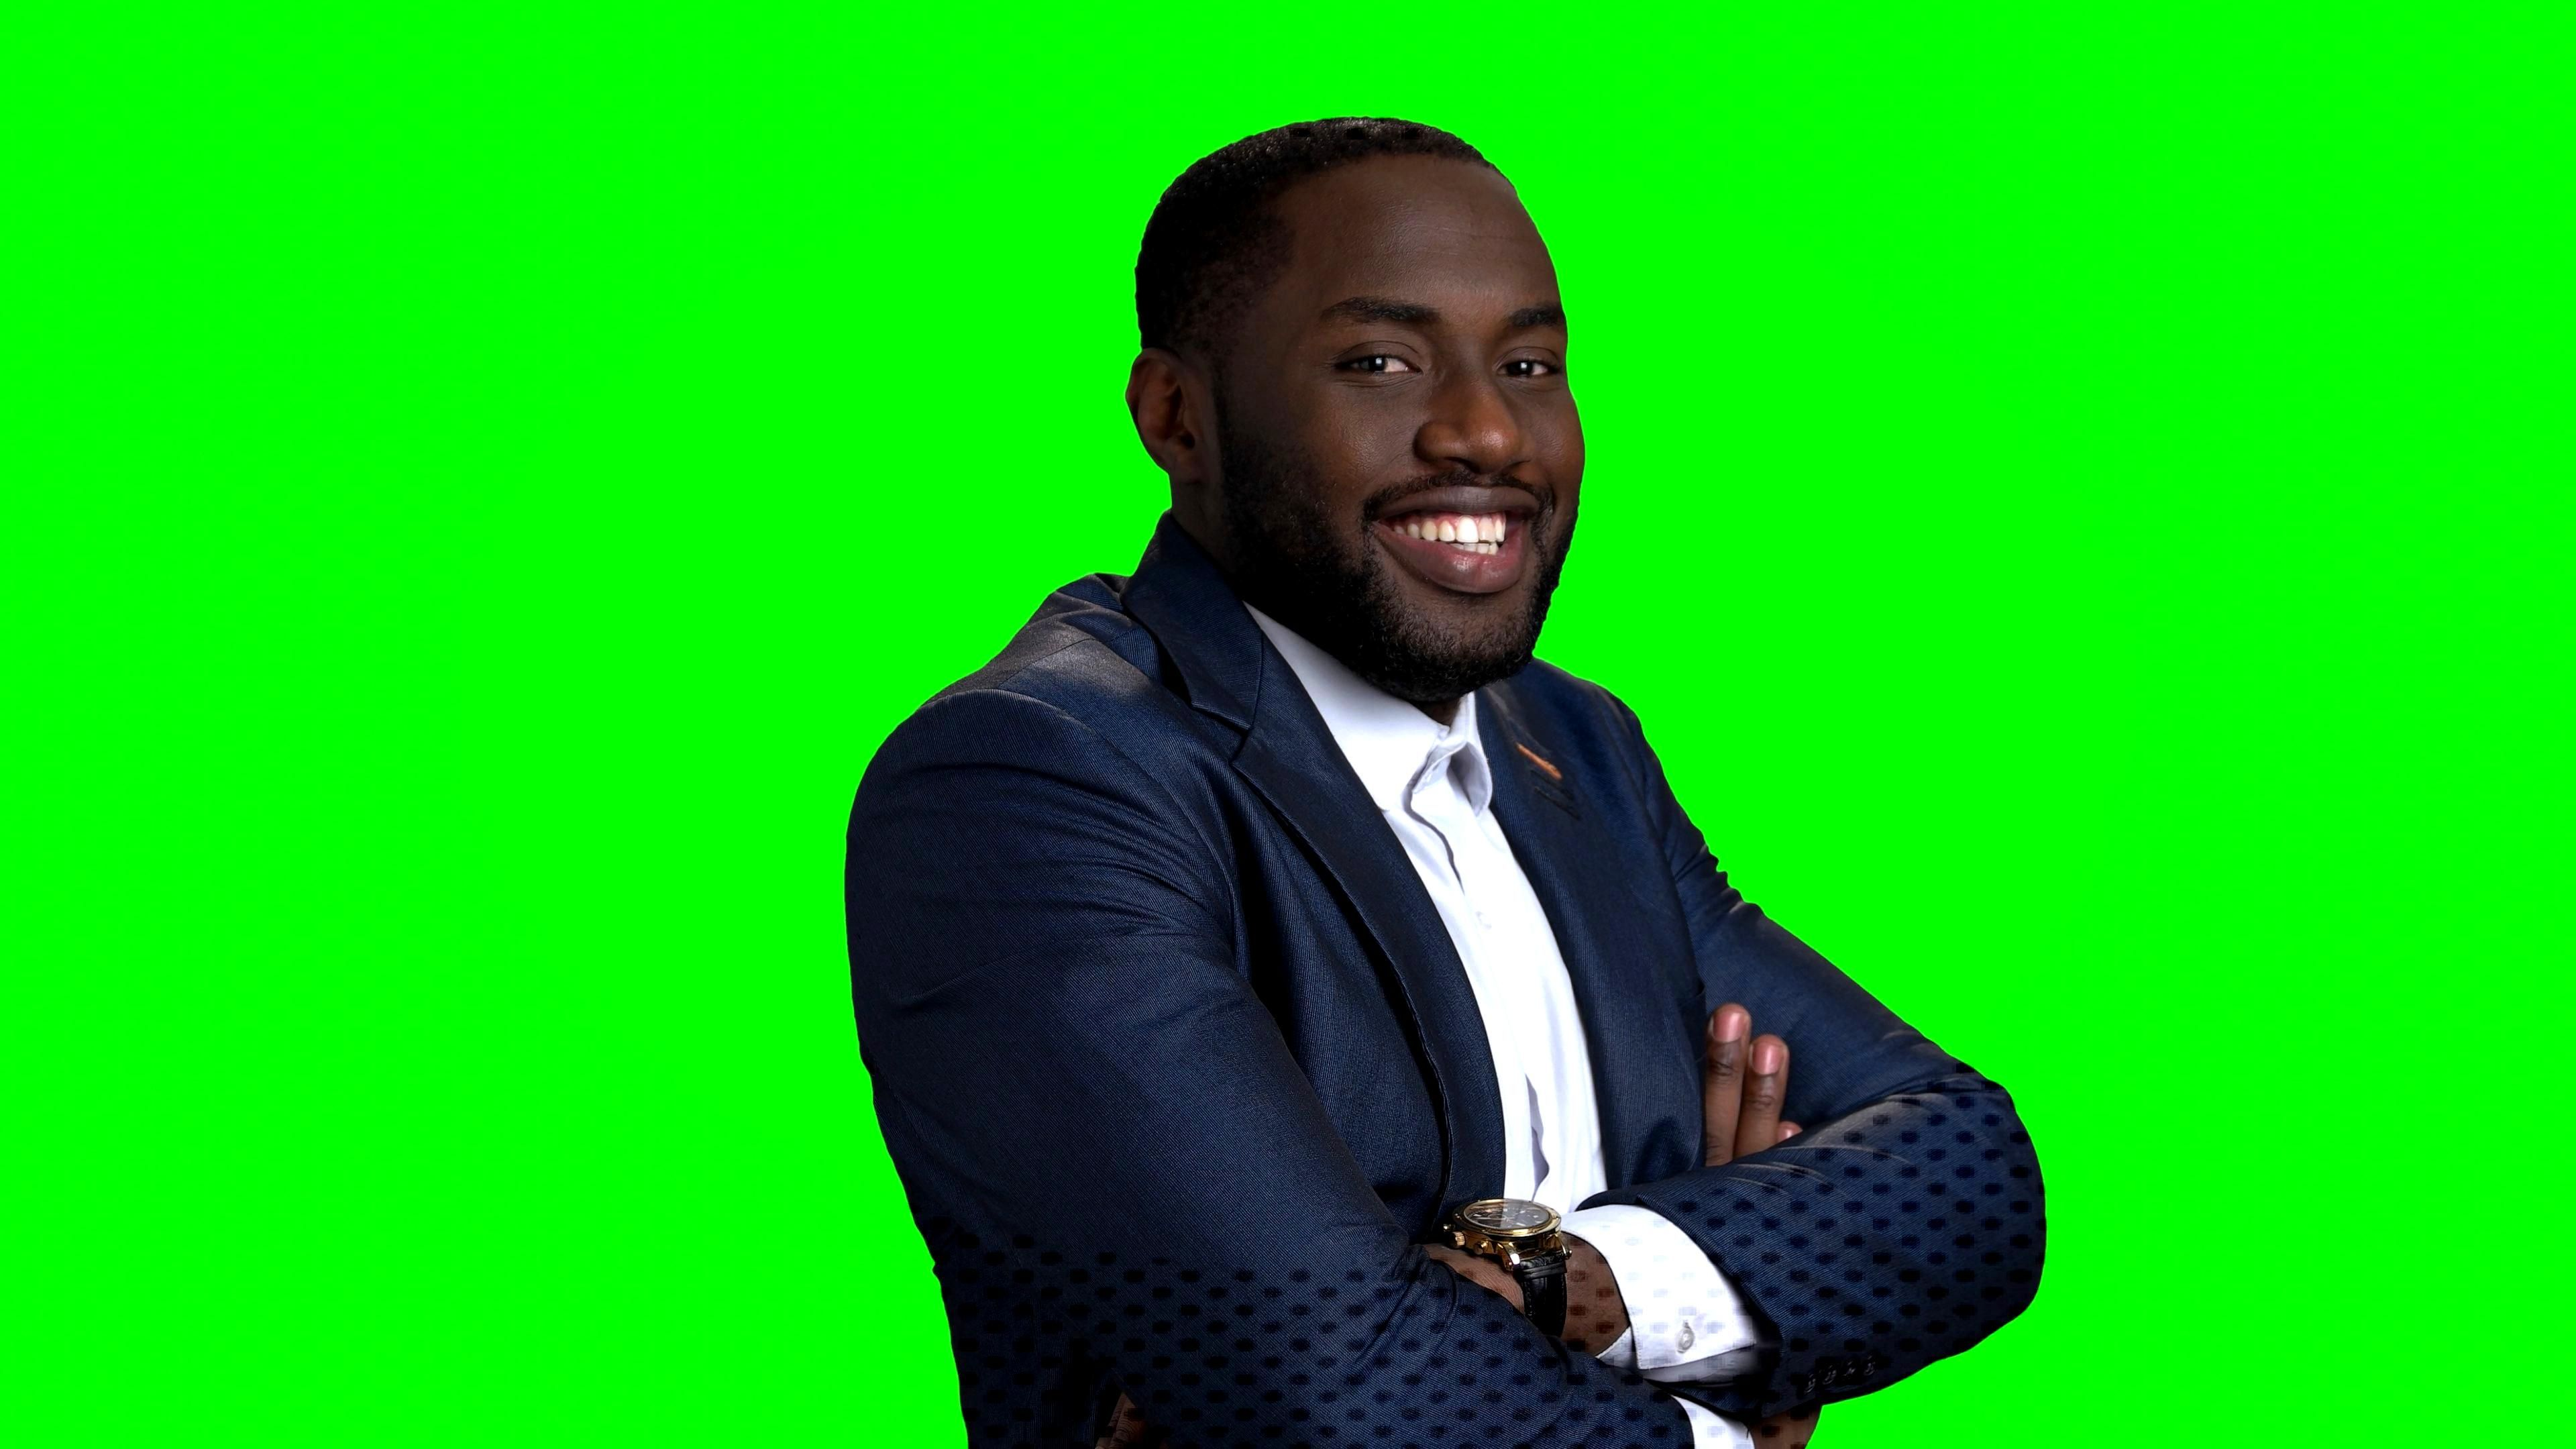 Smiling afro american manager on green screen. Stock Footage ,#american#manager#Smiling#afro